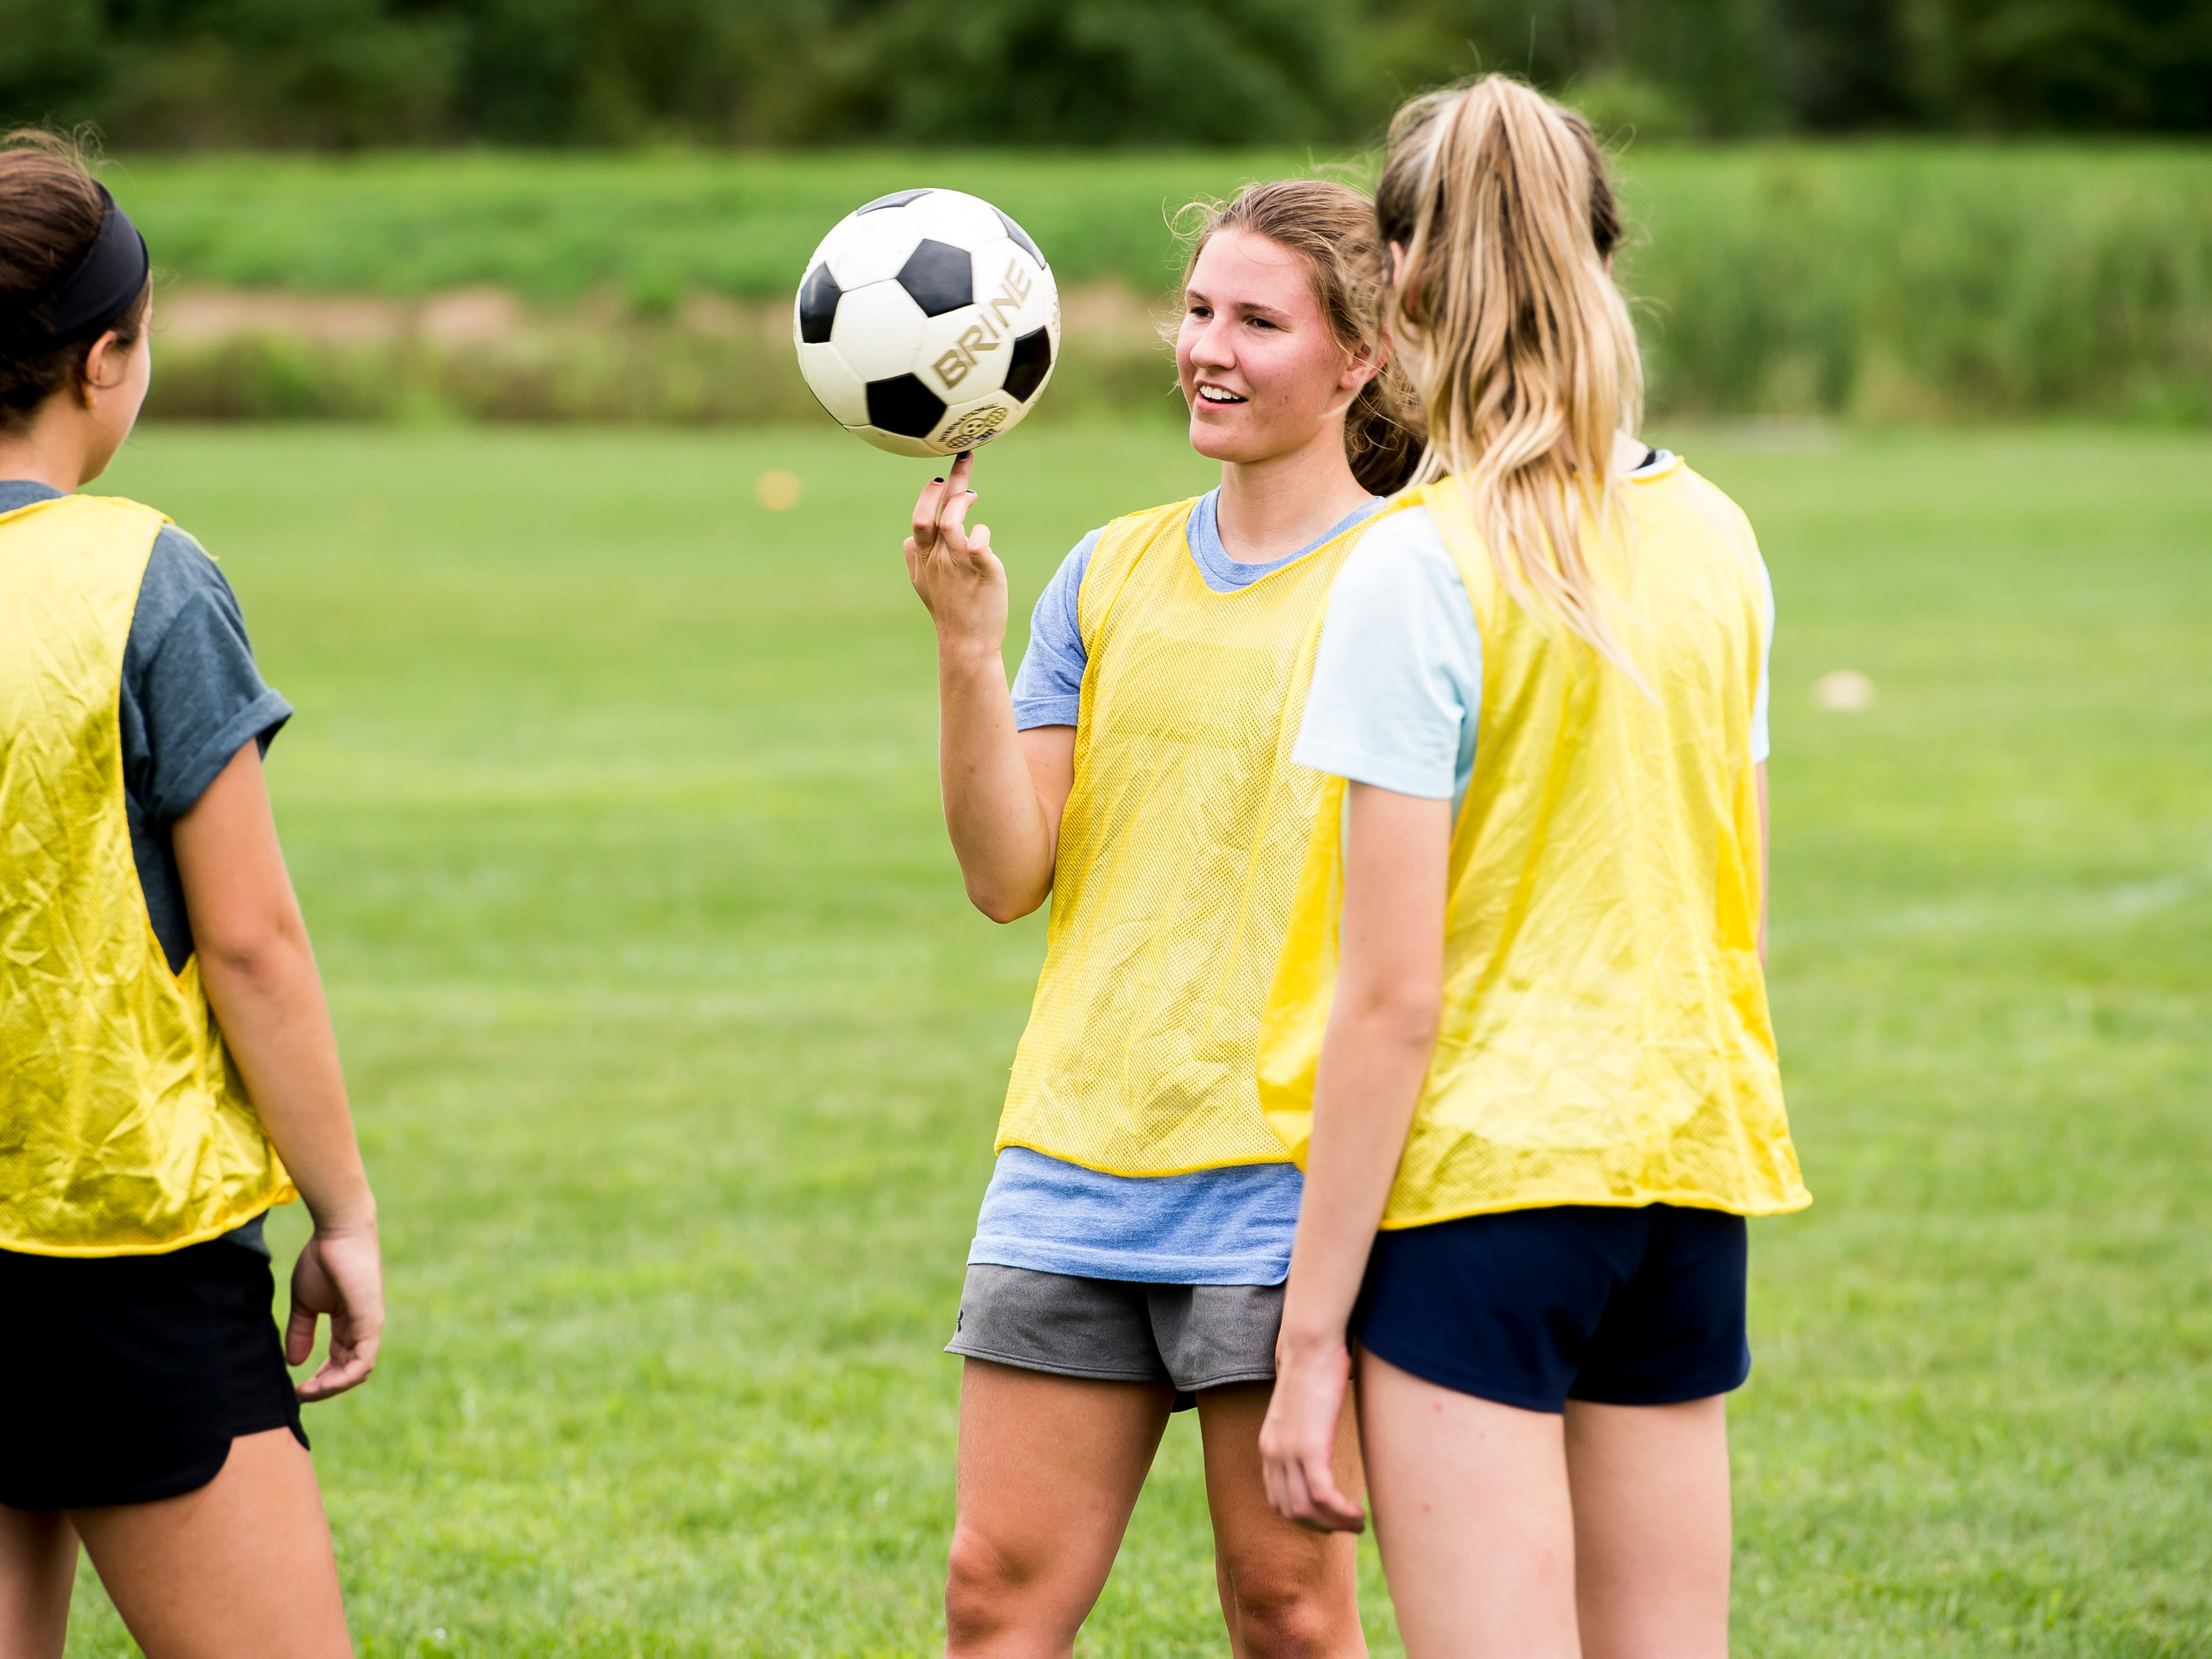 Gettysburg's Sam Shafer spins a soccer ball on her finger during the first day of fall sports practice on Monday, August 13, 2018.